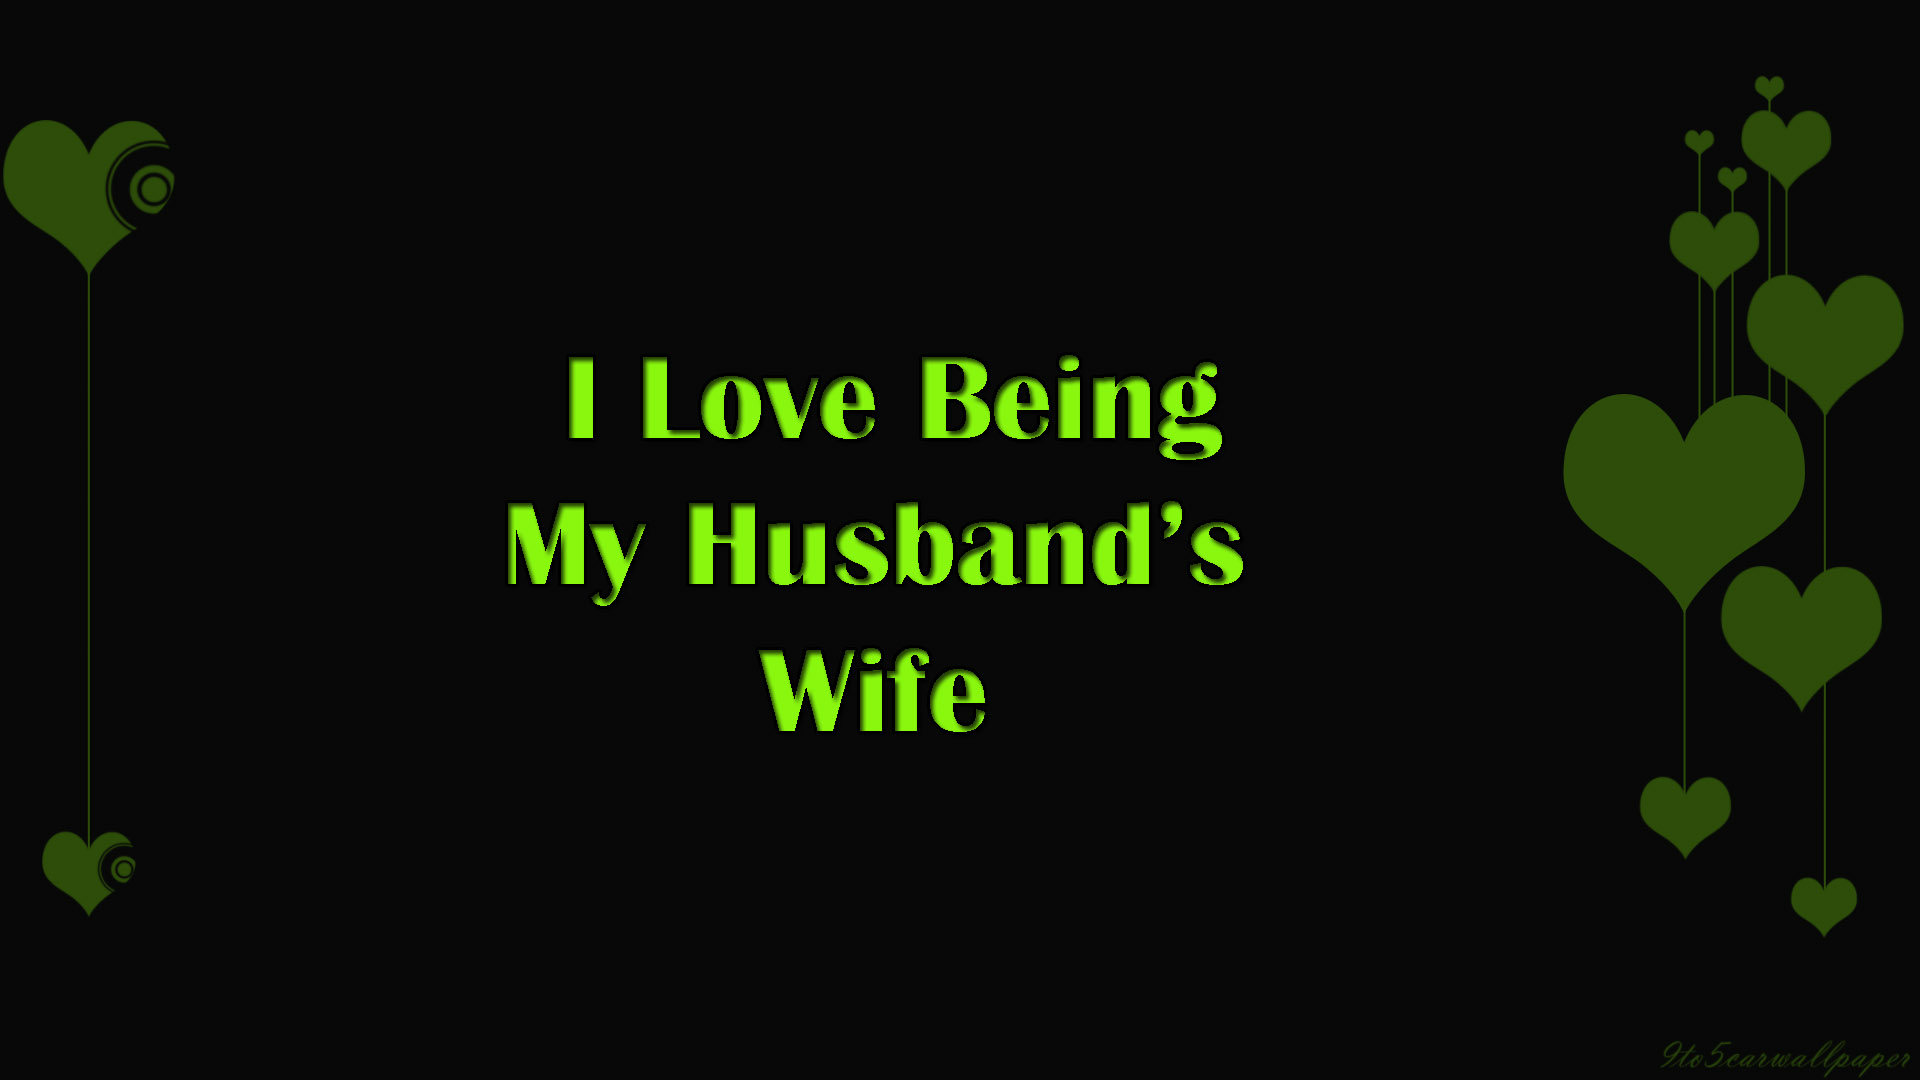 Love Wallpaper Husband Wife : Love Quotes,Images & Hd Wallpapers car Wallpapers